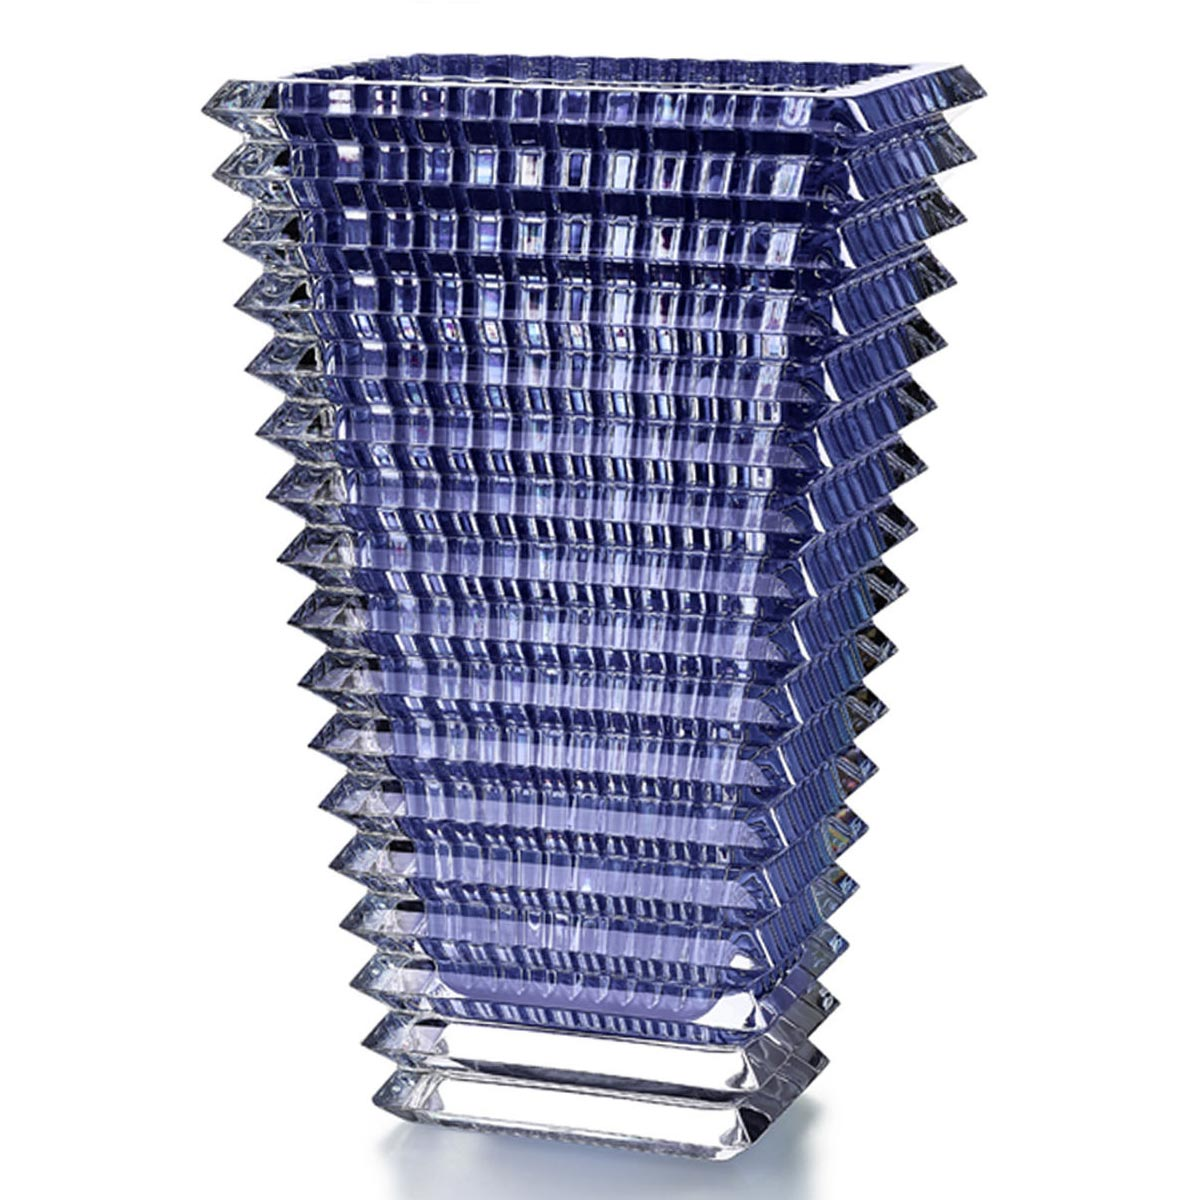 Vase rectangular blue<br>H: 30cm, l: 13.5cm, L: 18.7cm<br>Eye